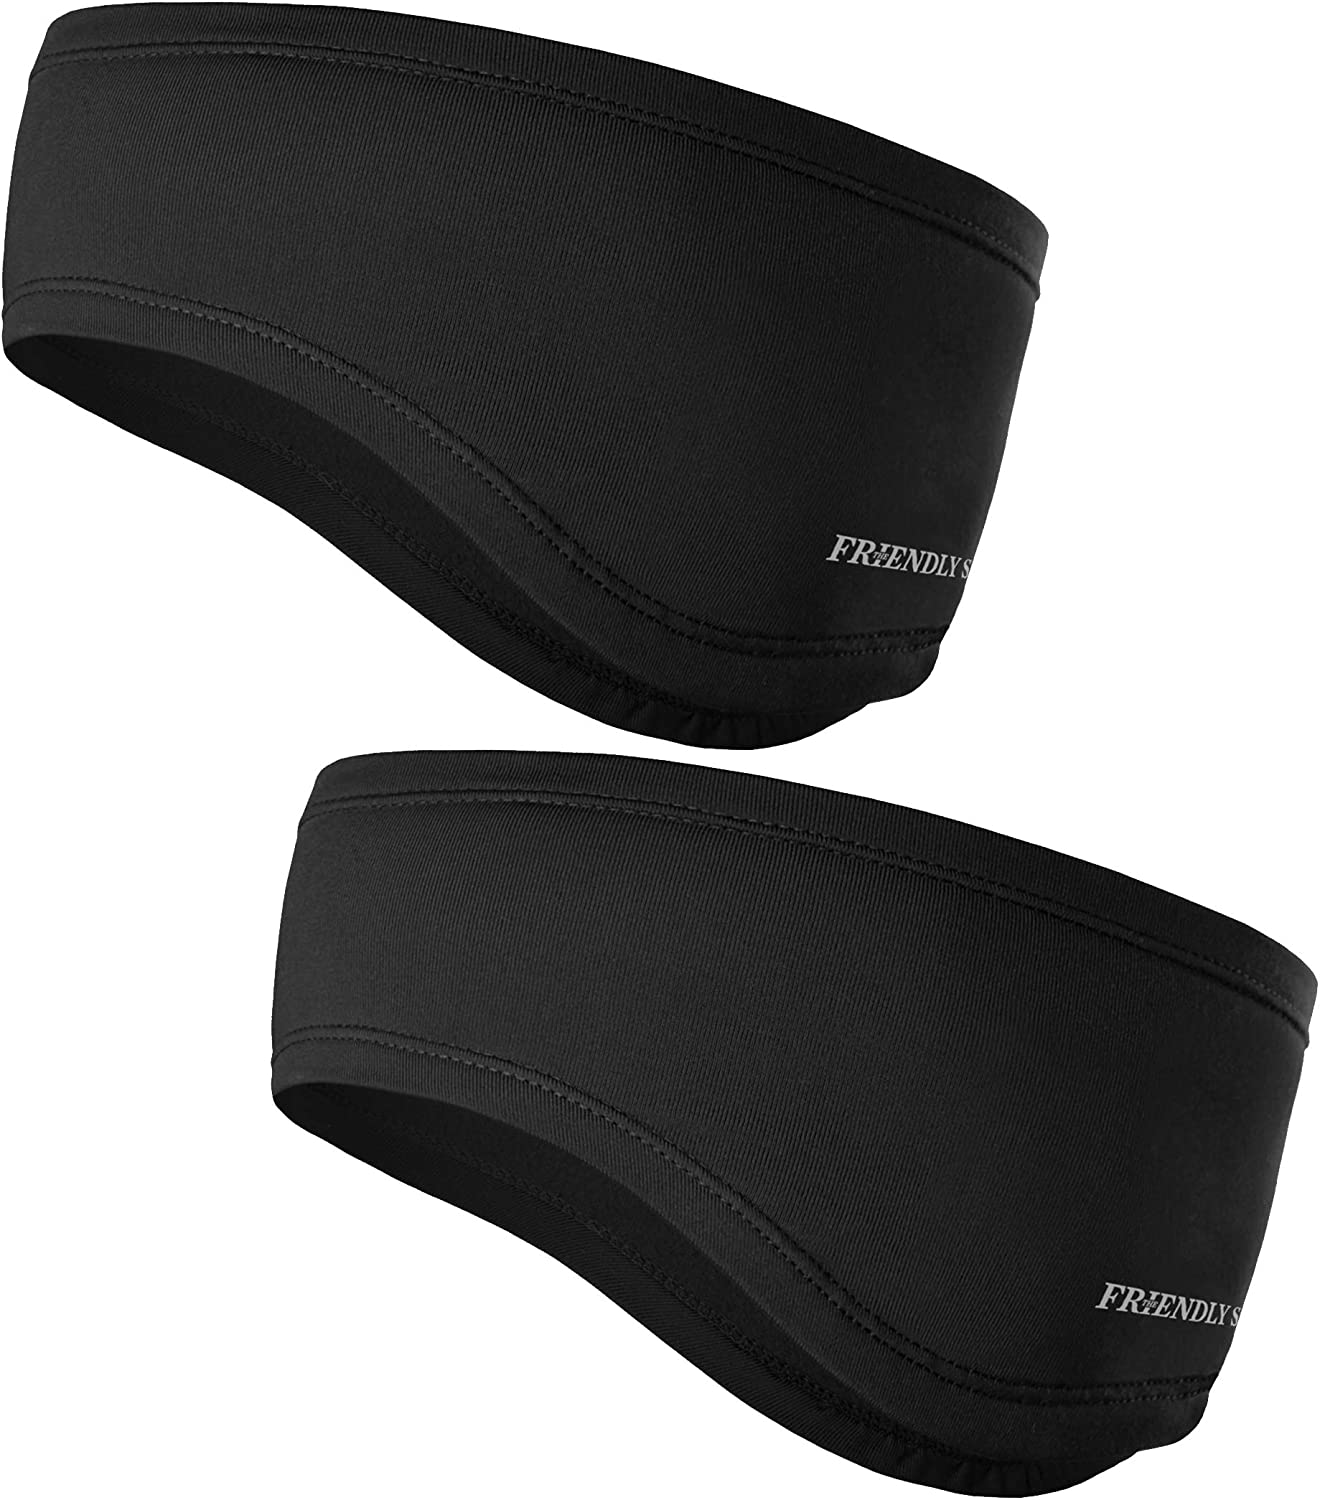 The Friendly Swede Running Headband Ear Warmer - 2-Pack, Sports Headband for Outdoors, Running, Cycling, Hiking - Ideal as Liner Under Helmets (Standard Black) : Clothing